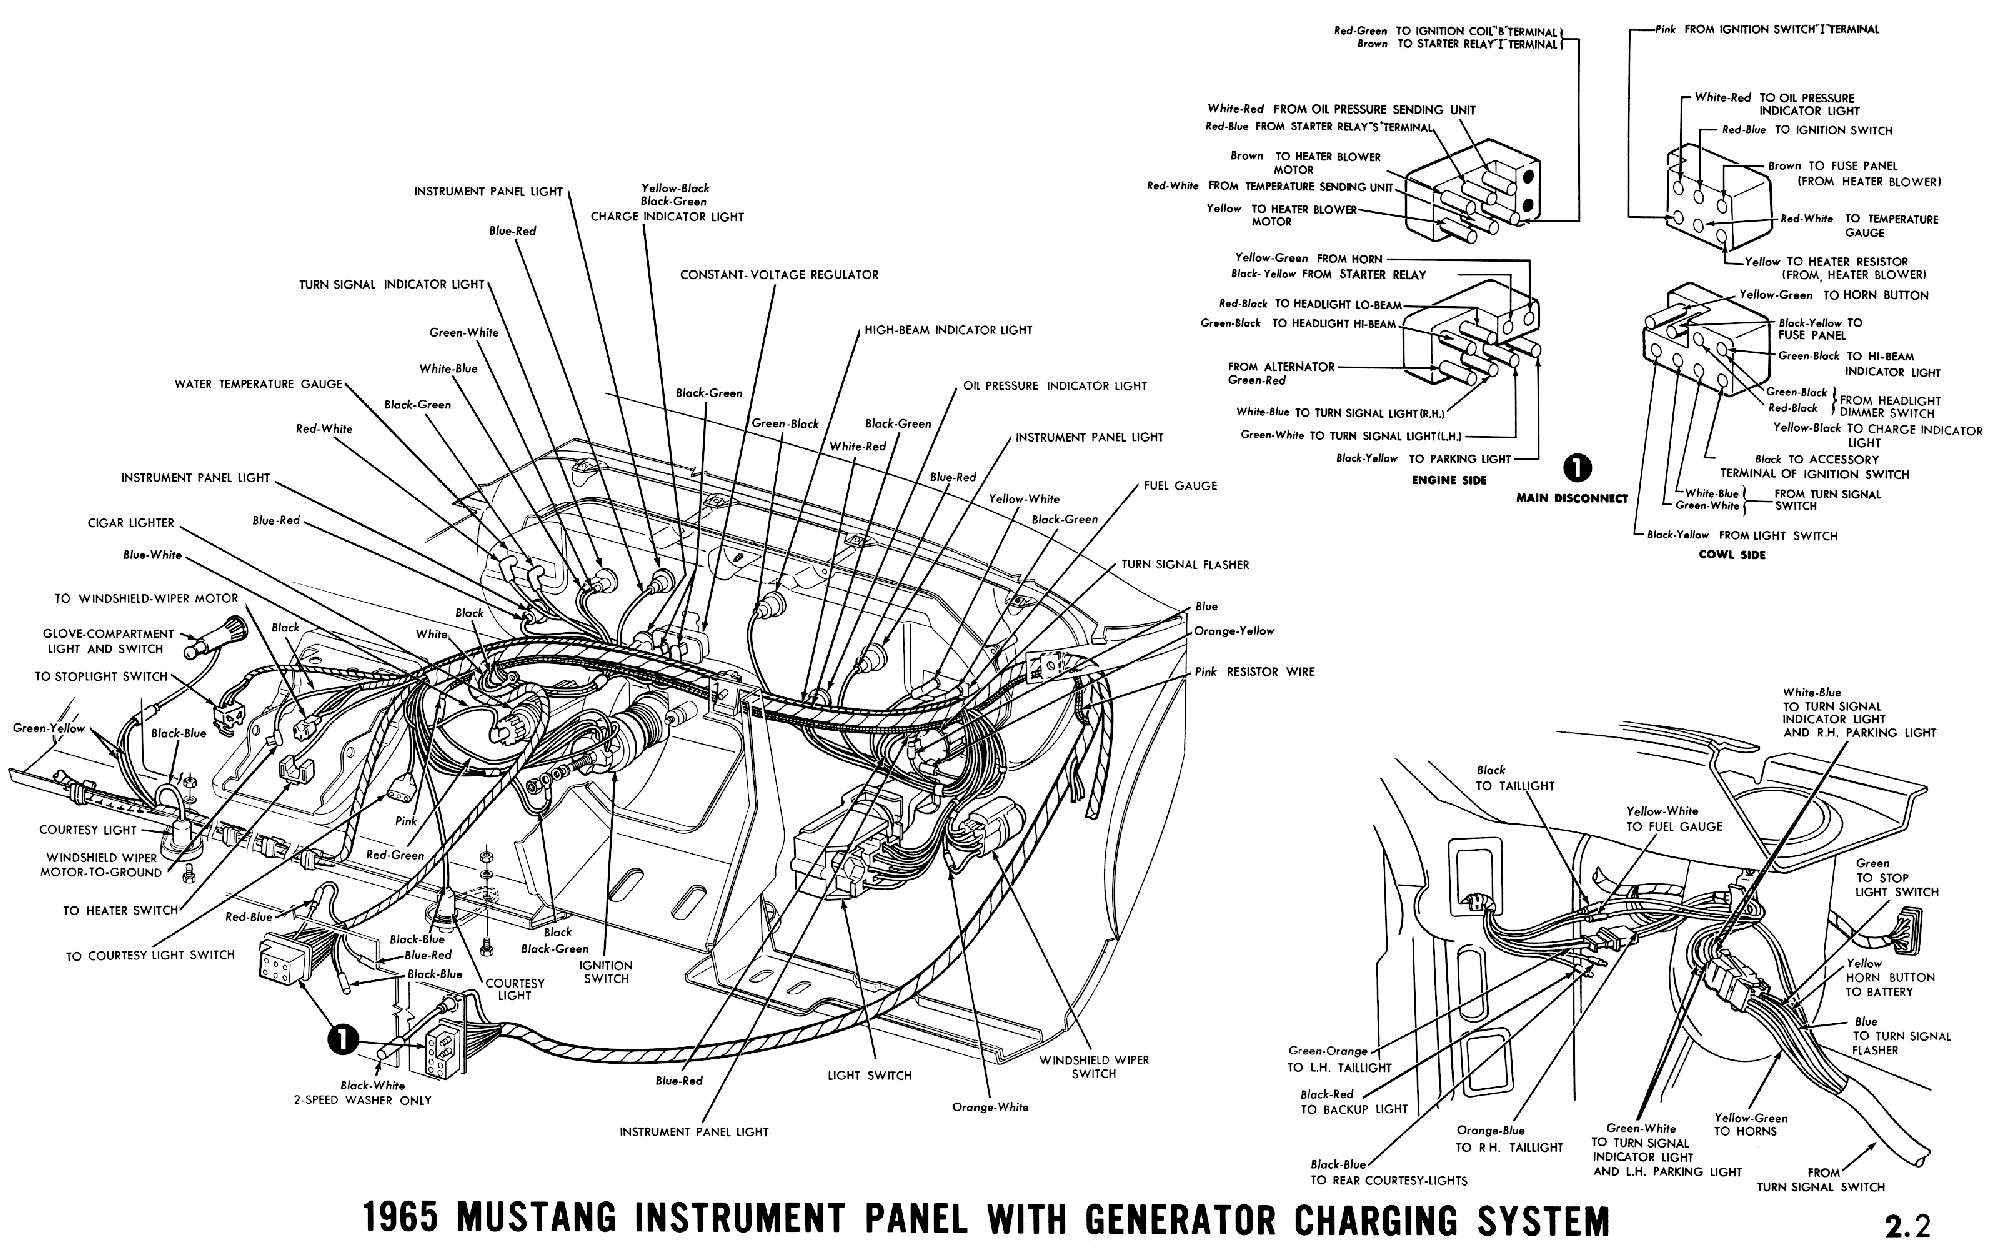 1965 Mustang Wiring Diagrams Average Joe Restoration Switch And Schematic Bo Diagram 1965b